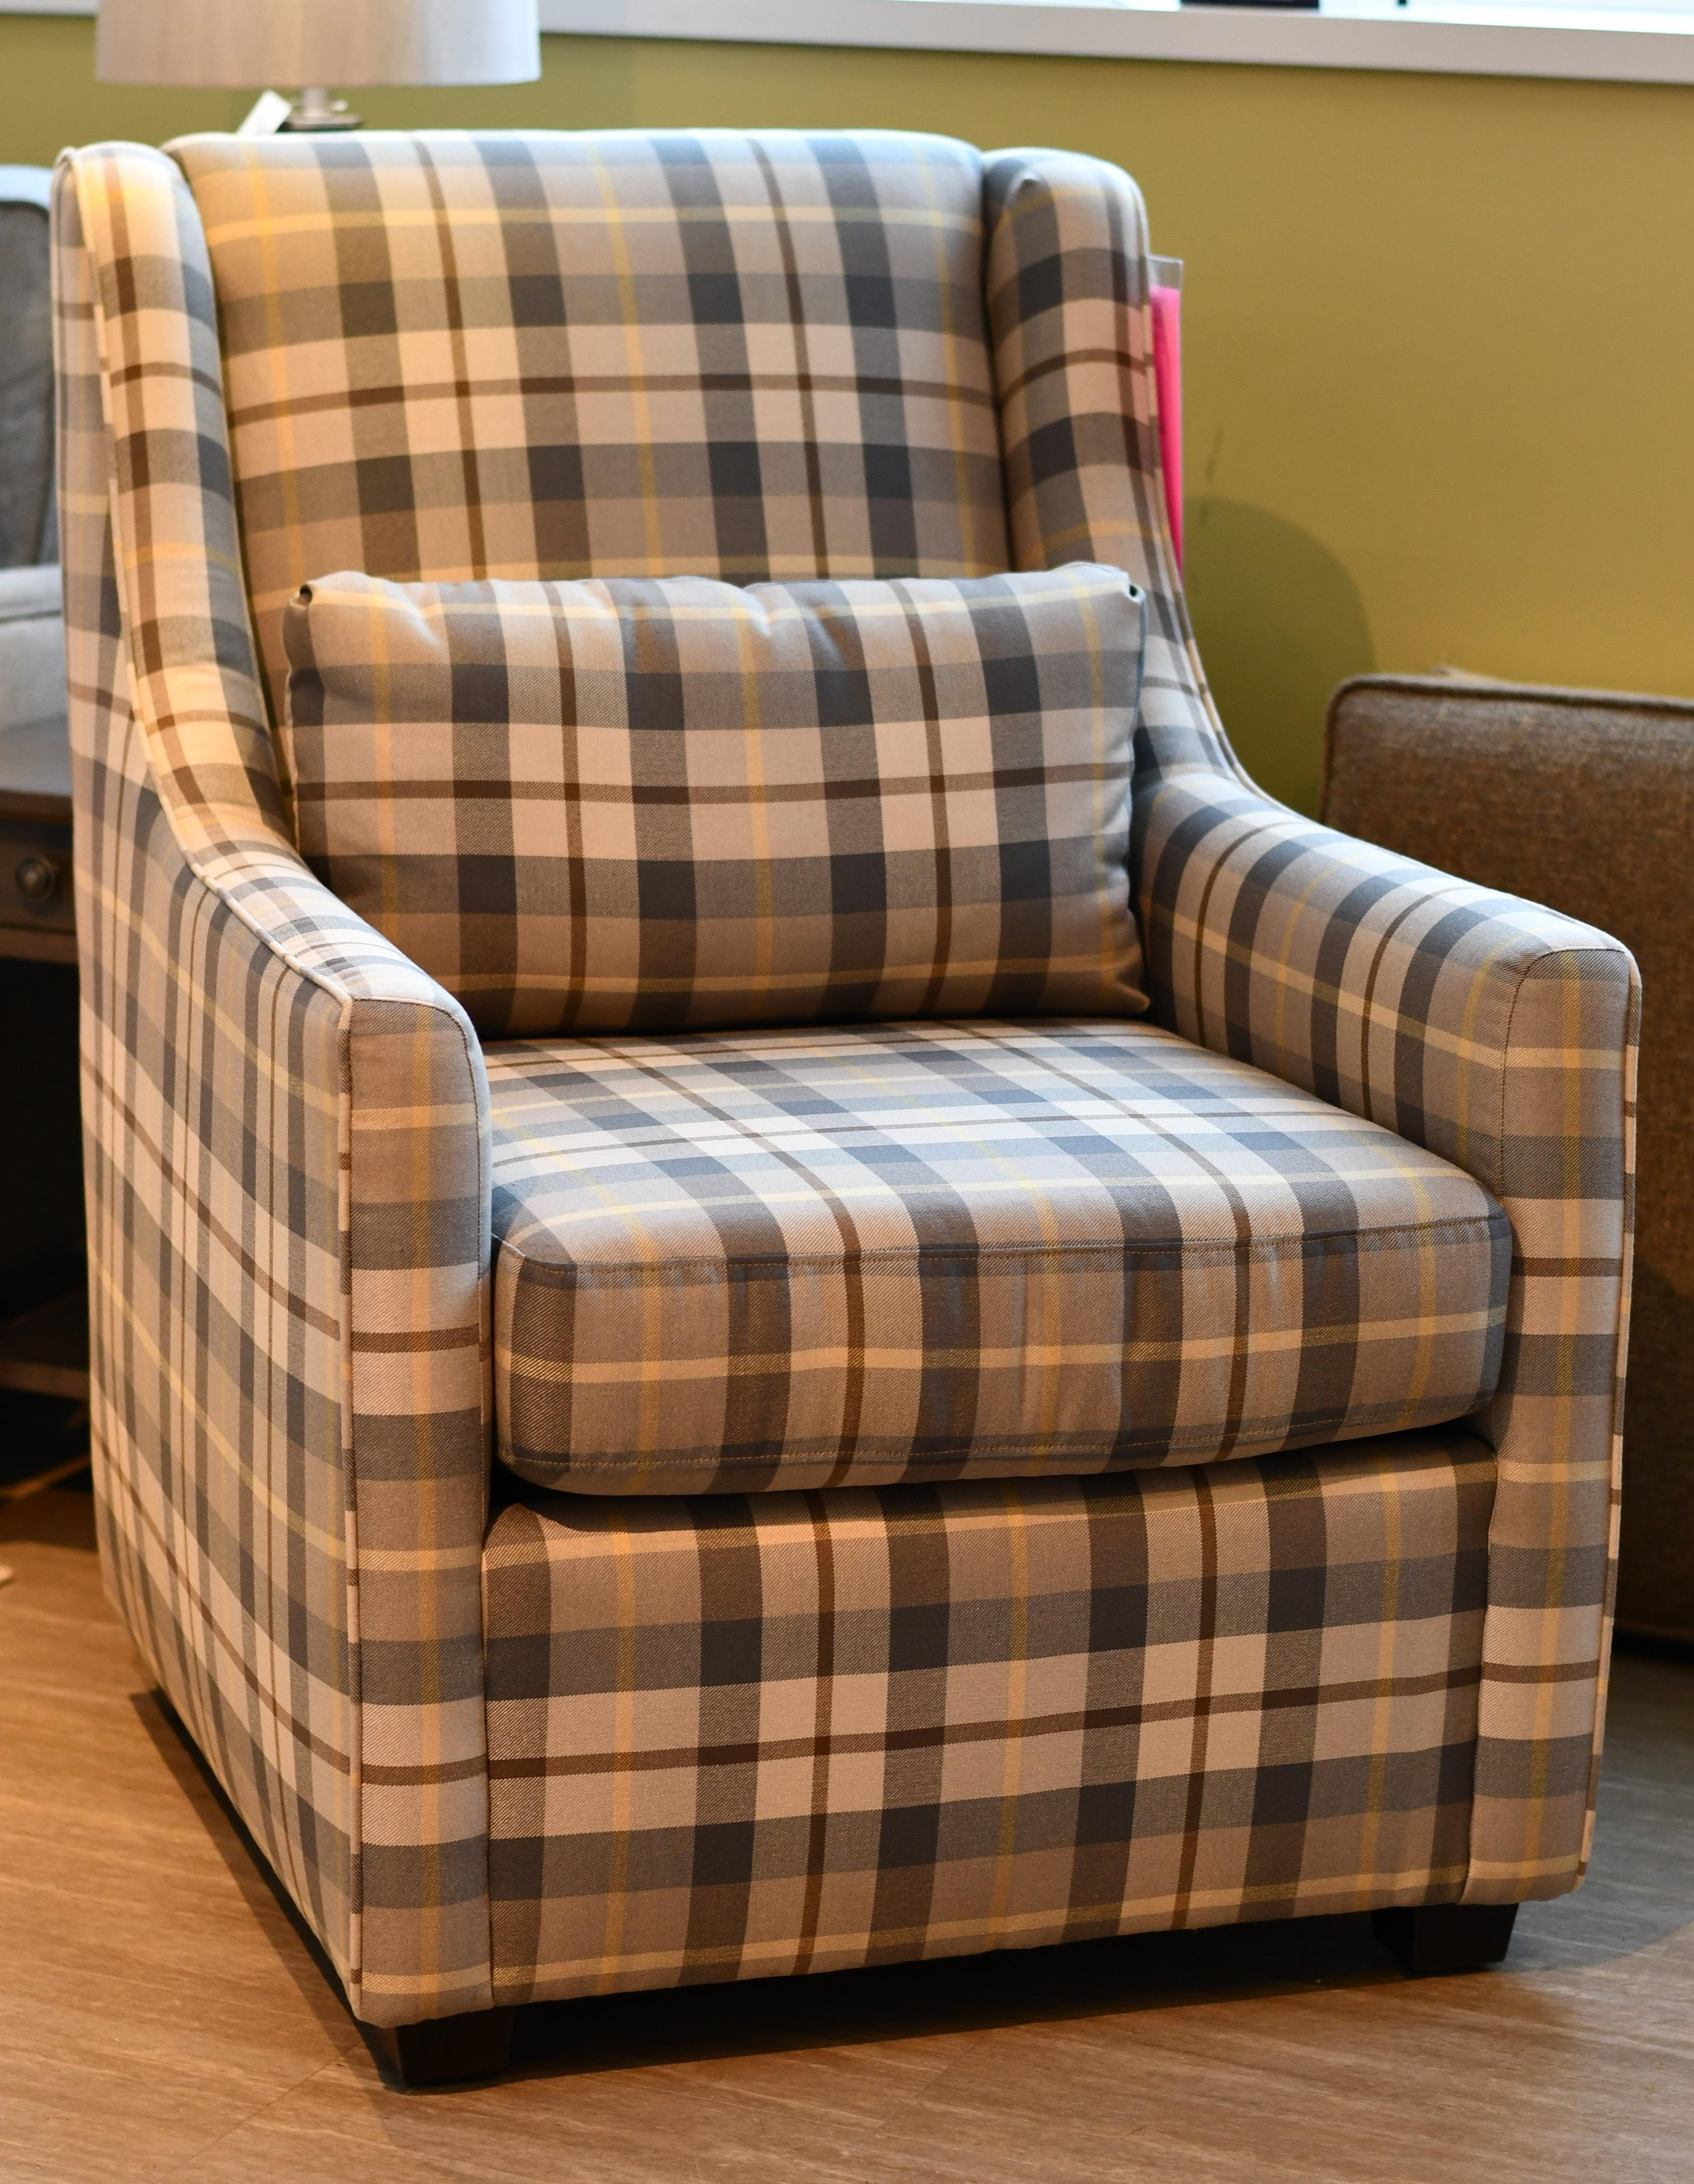 45 Chair by Southside Designs at Bennett's Furniture and Mattresses